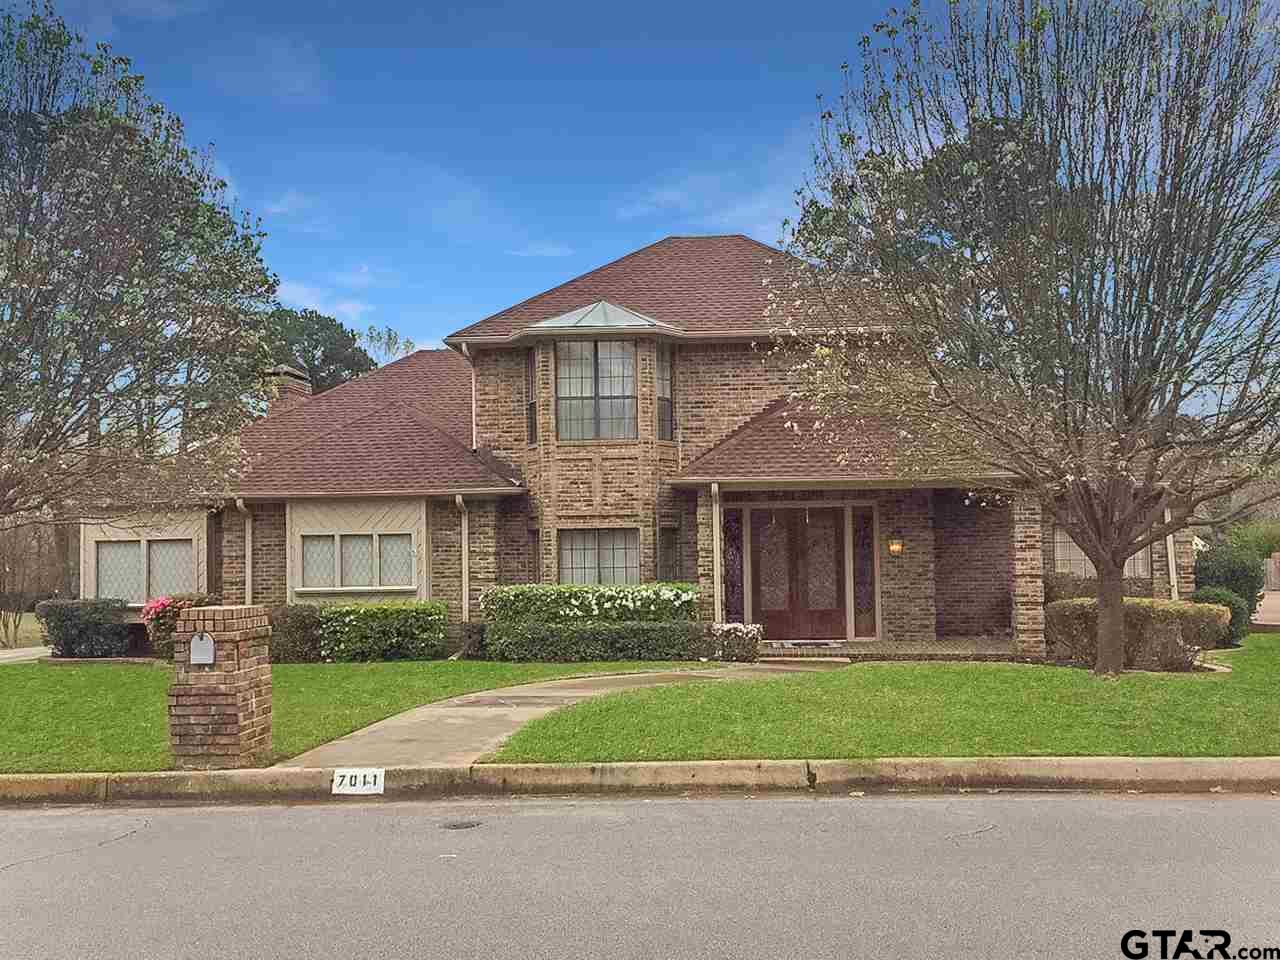 7011 Hollytree Circle, Tyler, TX 75703